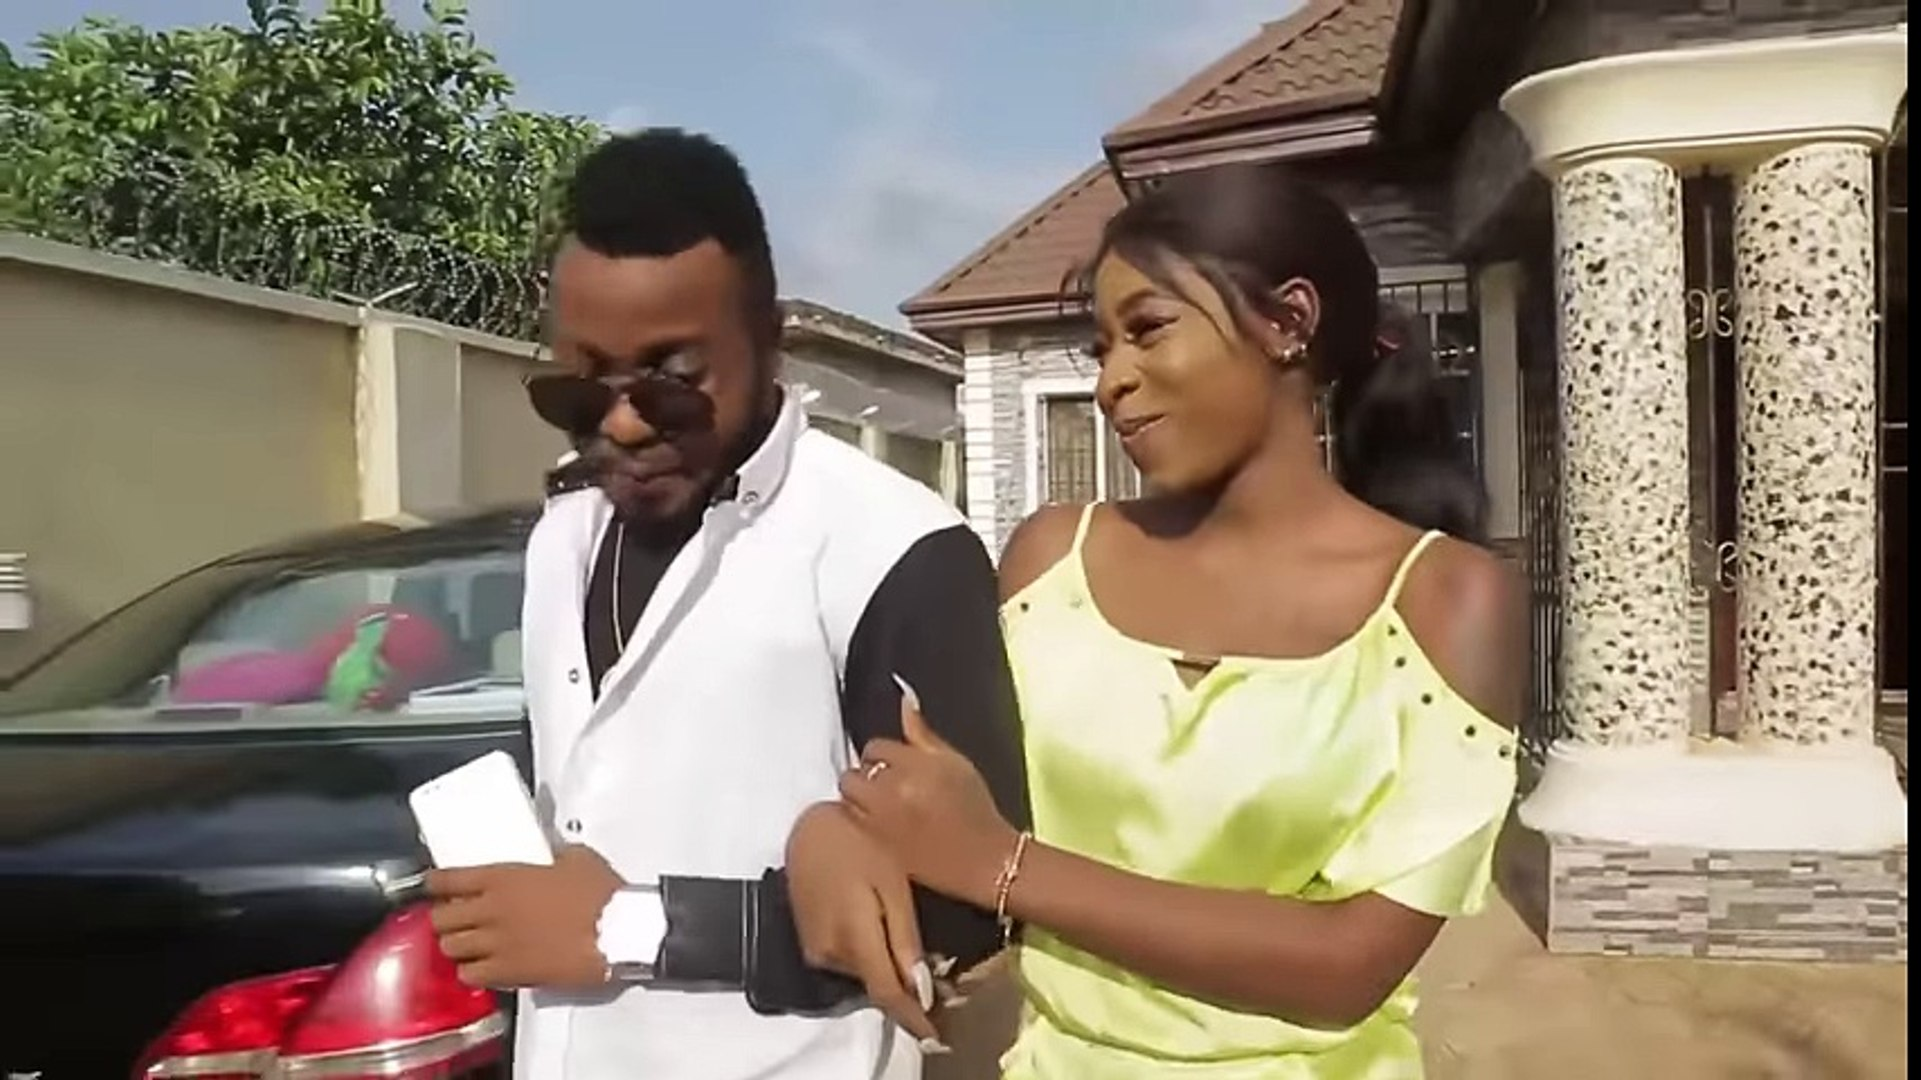 THE GATE MAN (COMEDY SKIT) (FUNNY VIDEOS) - Latest 2018 Nigerian Comedy- Comedy Skits- Naija Comedy